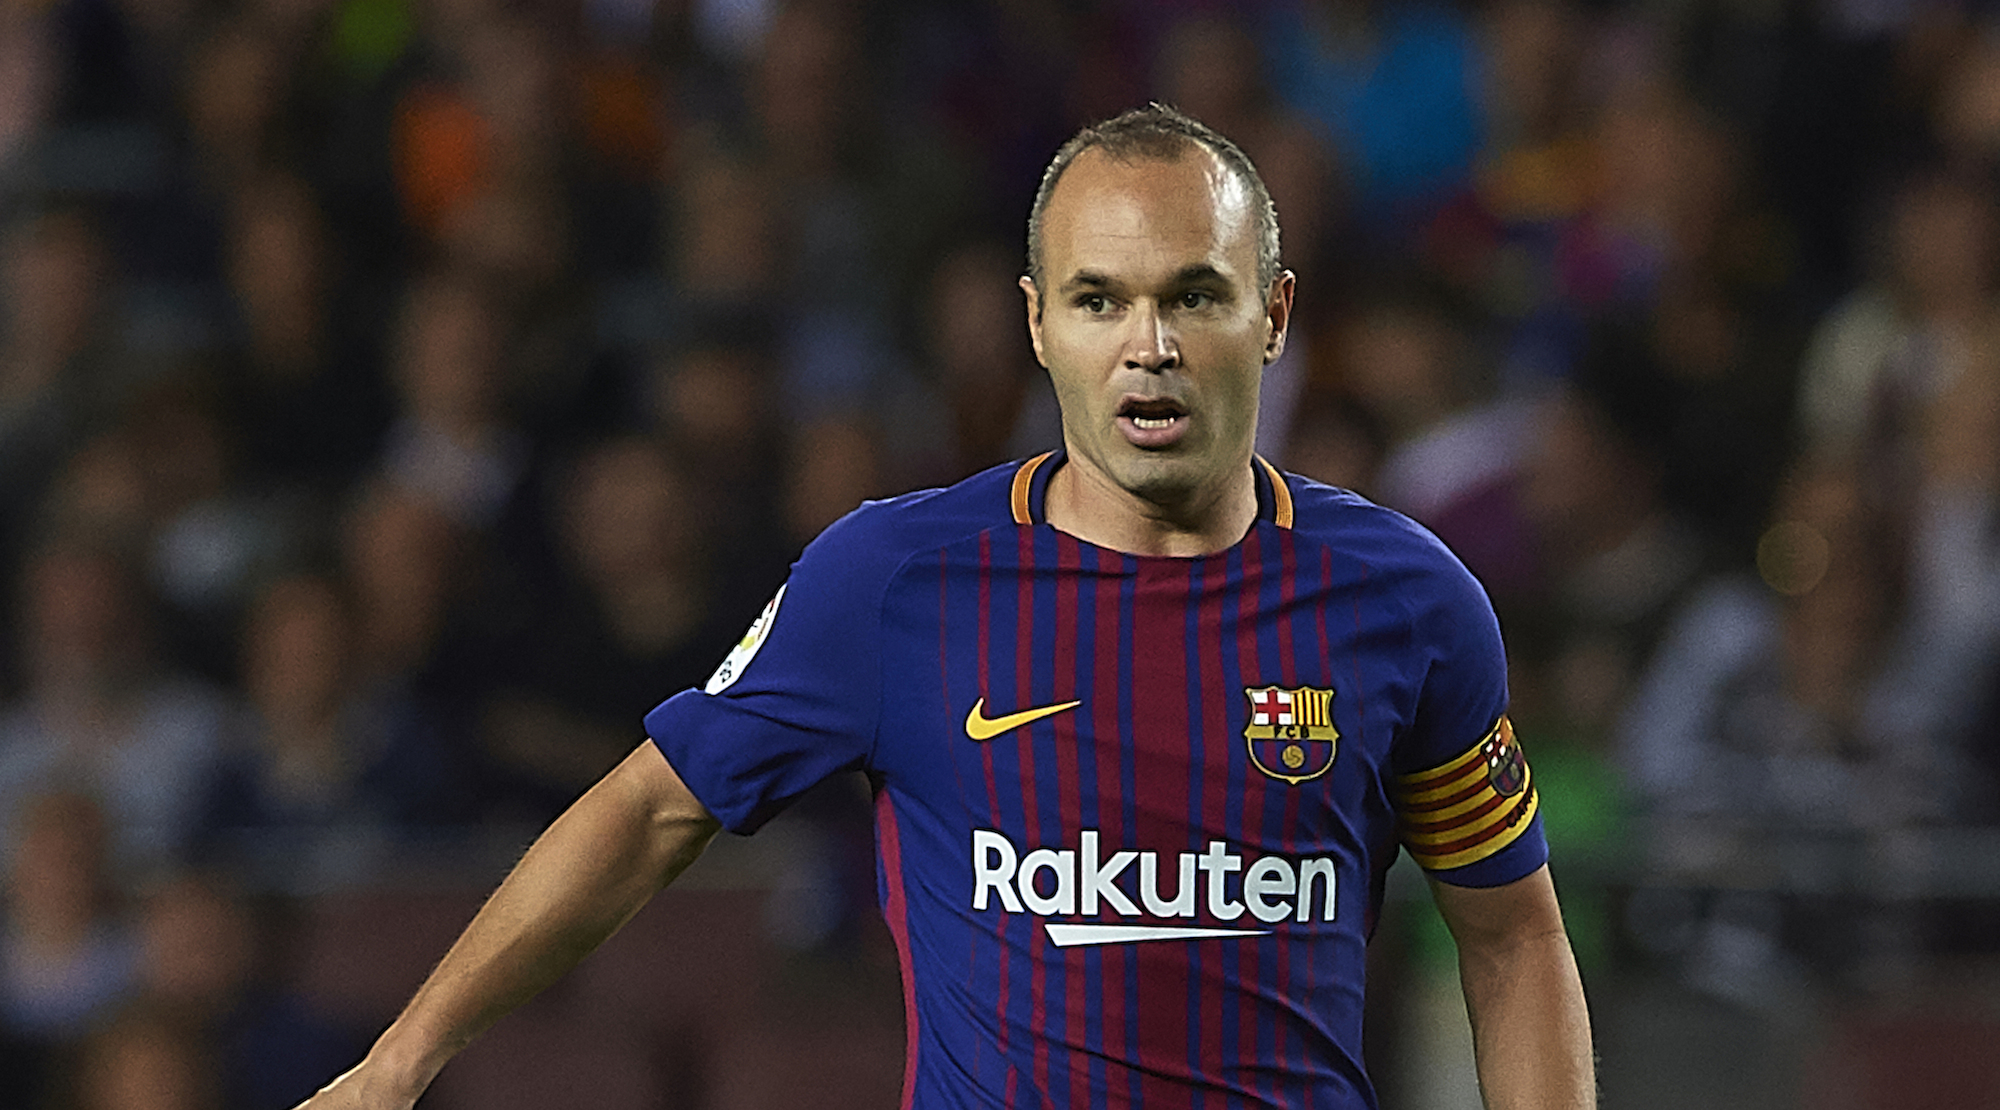 BARCELONA, SPAIN - SEPTEMBER 09: Andres Iniesta of Barcelona runs with the ball during the La Liga match between Barcelona and Espanyol at Camp Nou on September 9, 2017 in Barcelona, Spain. (Photo by Manuel Queimadelos Alonso/Getty Images)